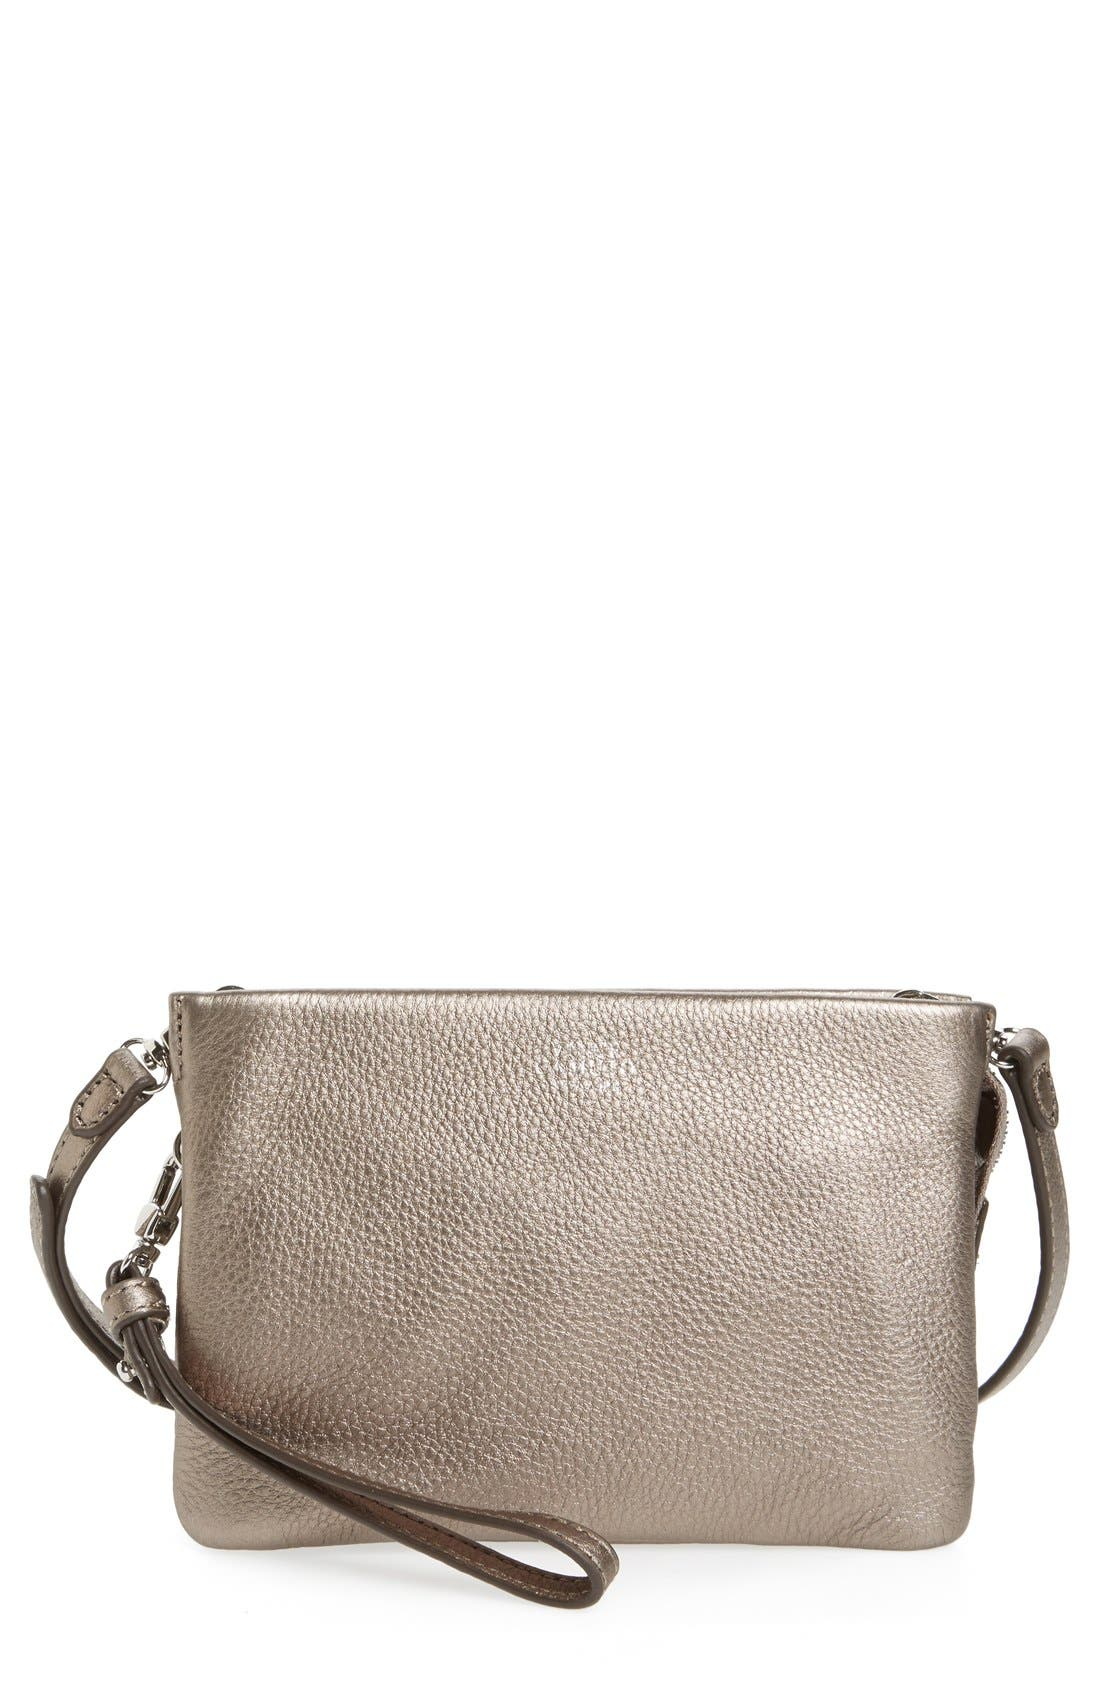 'Cami' Leather Crossbody Bag,                             Main thumbnail 30, color,